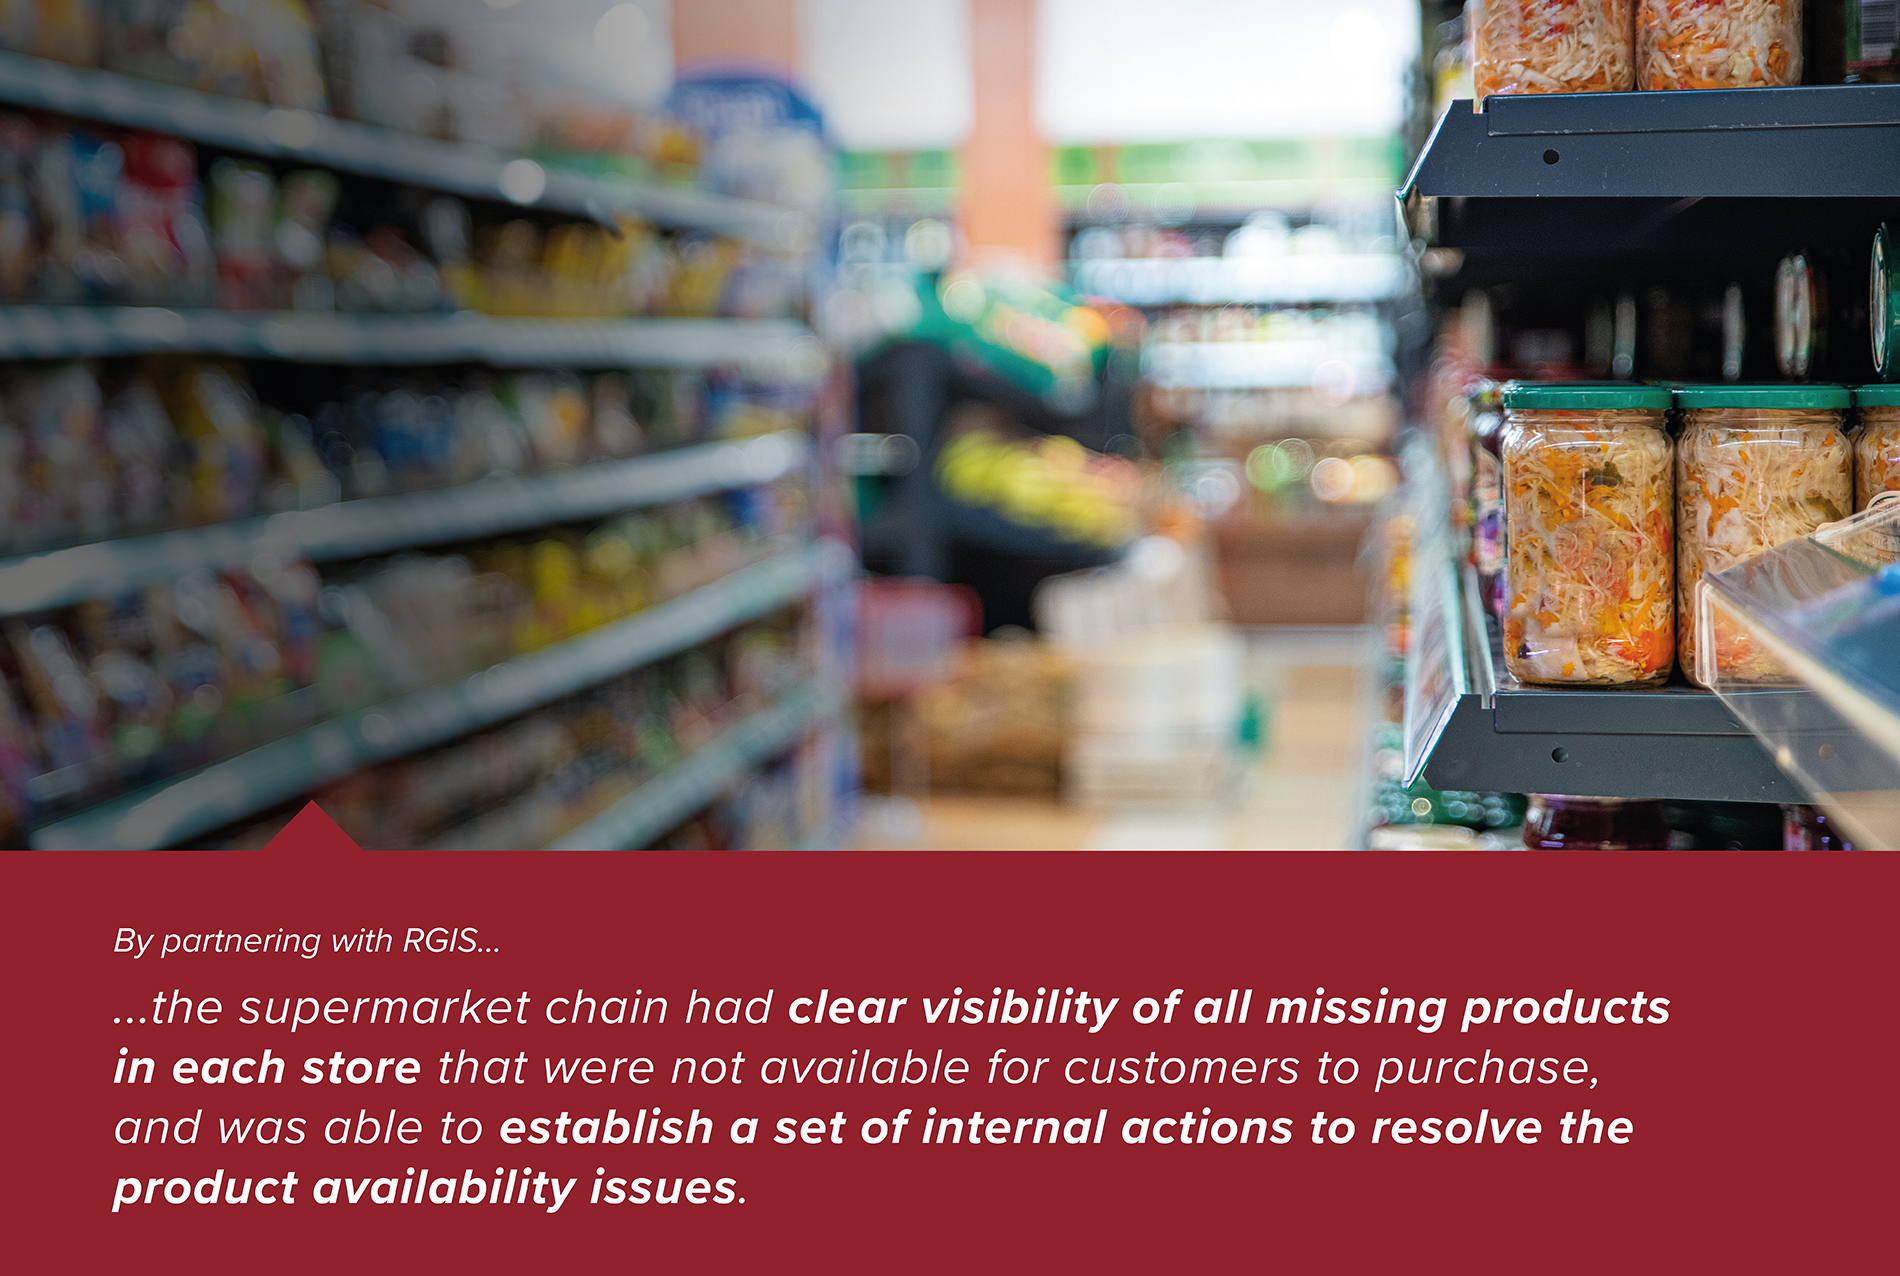 On-Shelf Availability of Selected Products within Supermarkets